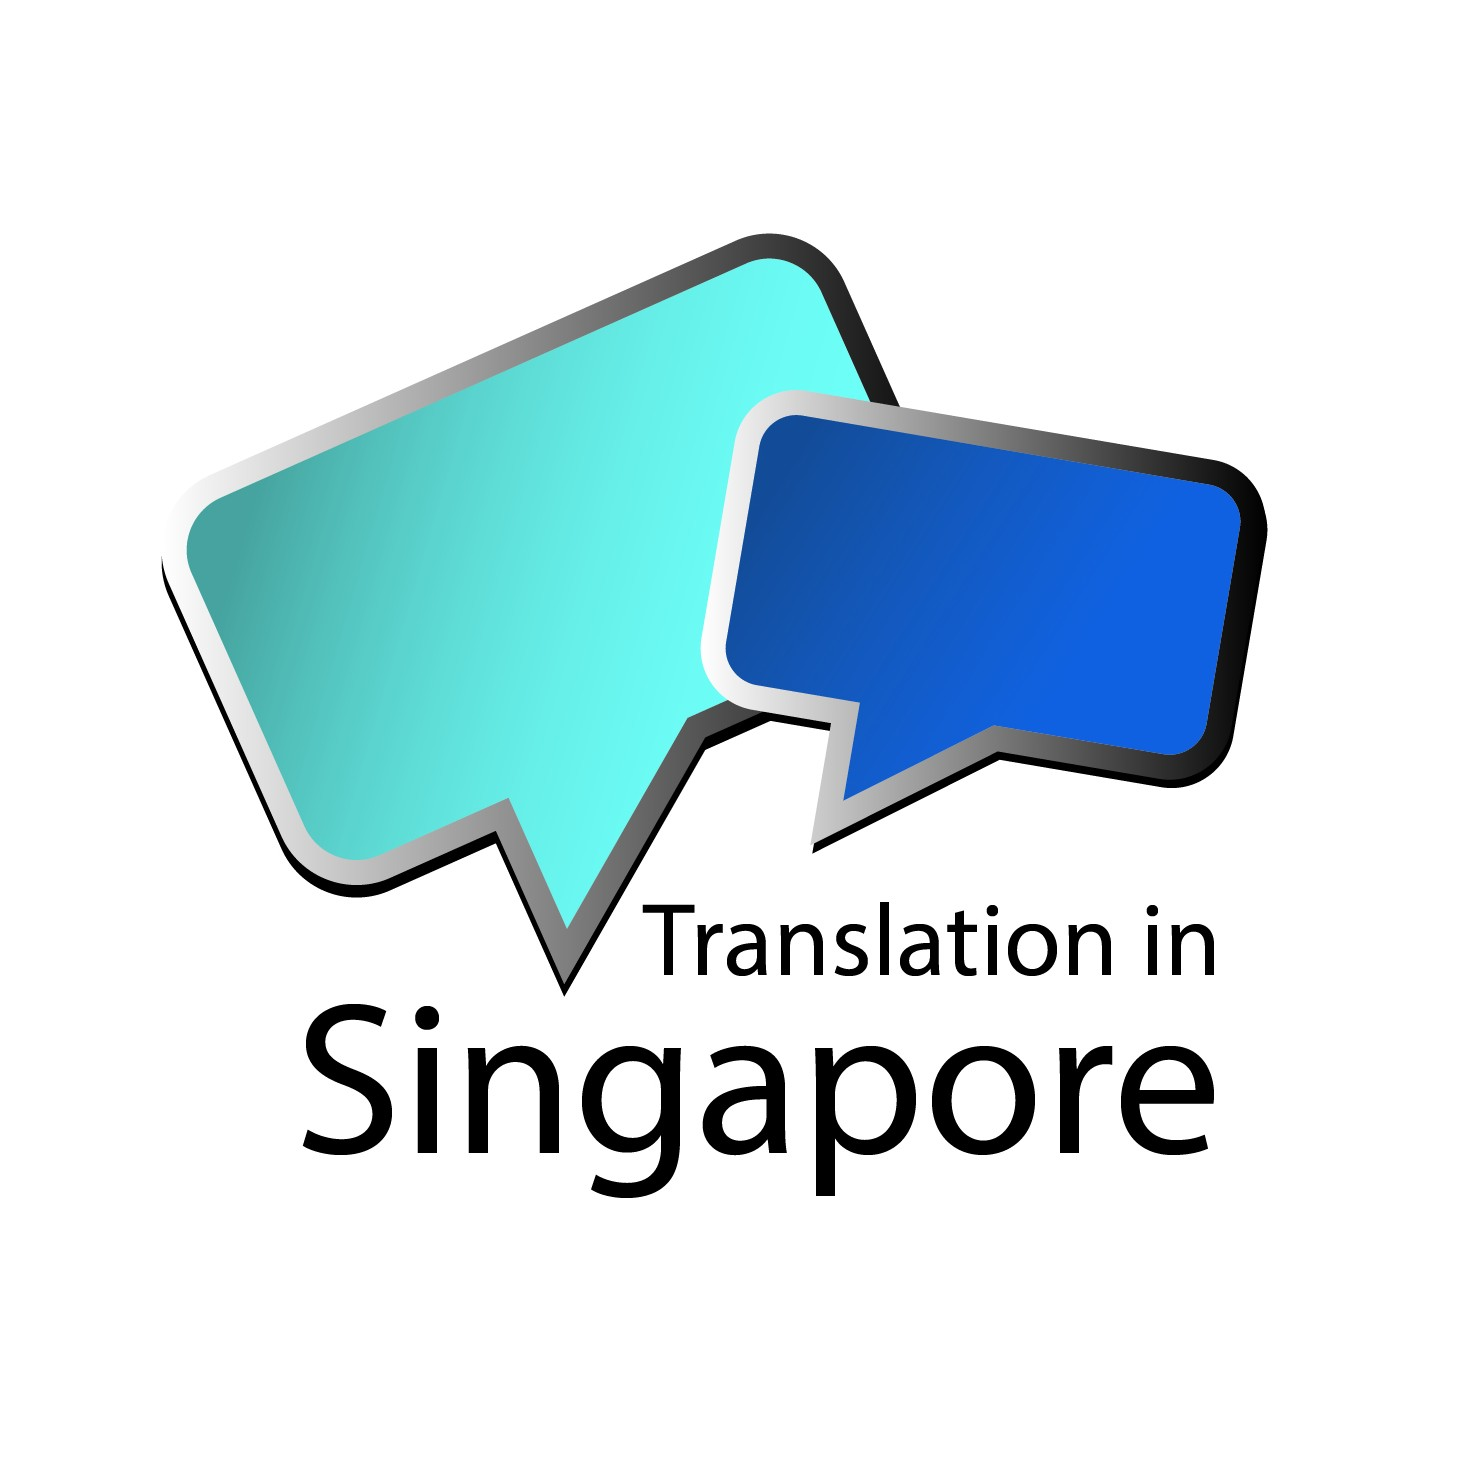 Translation in Singapore's logo